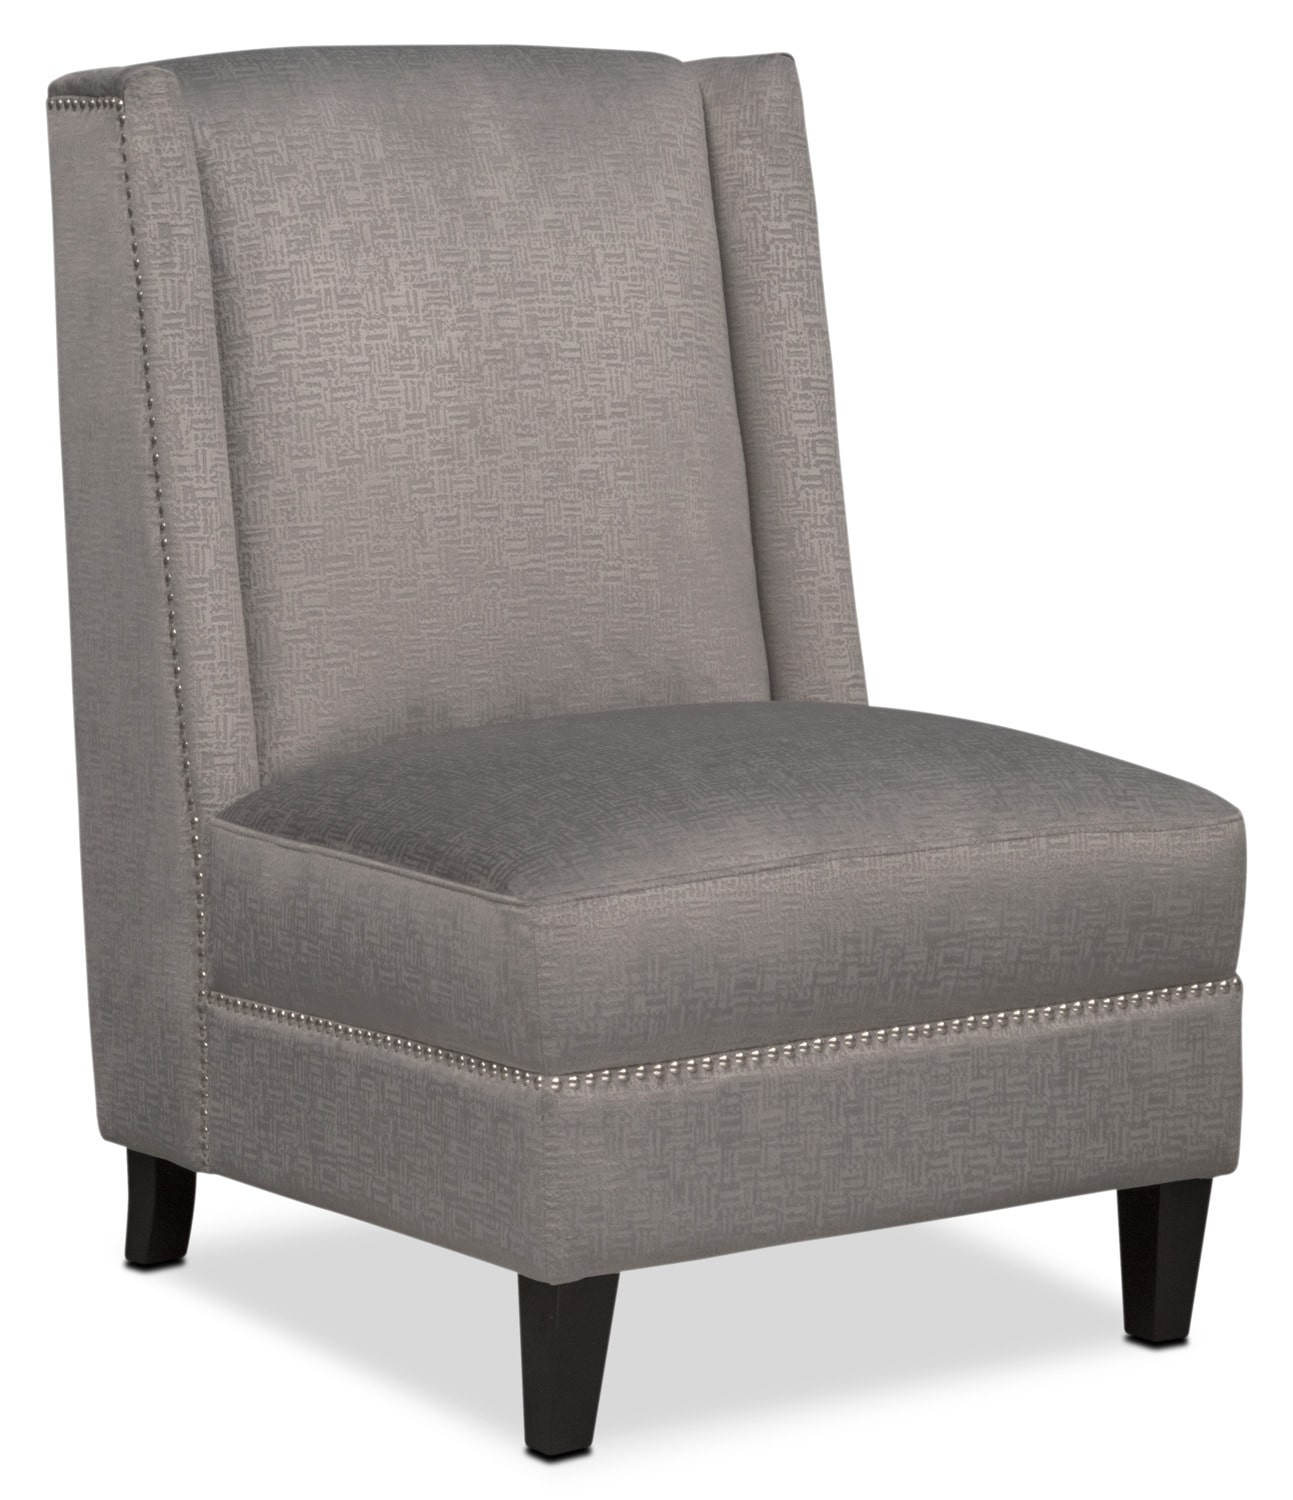 ... Accent Chair   Gray. Hover To Zoom